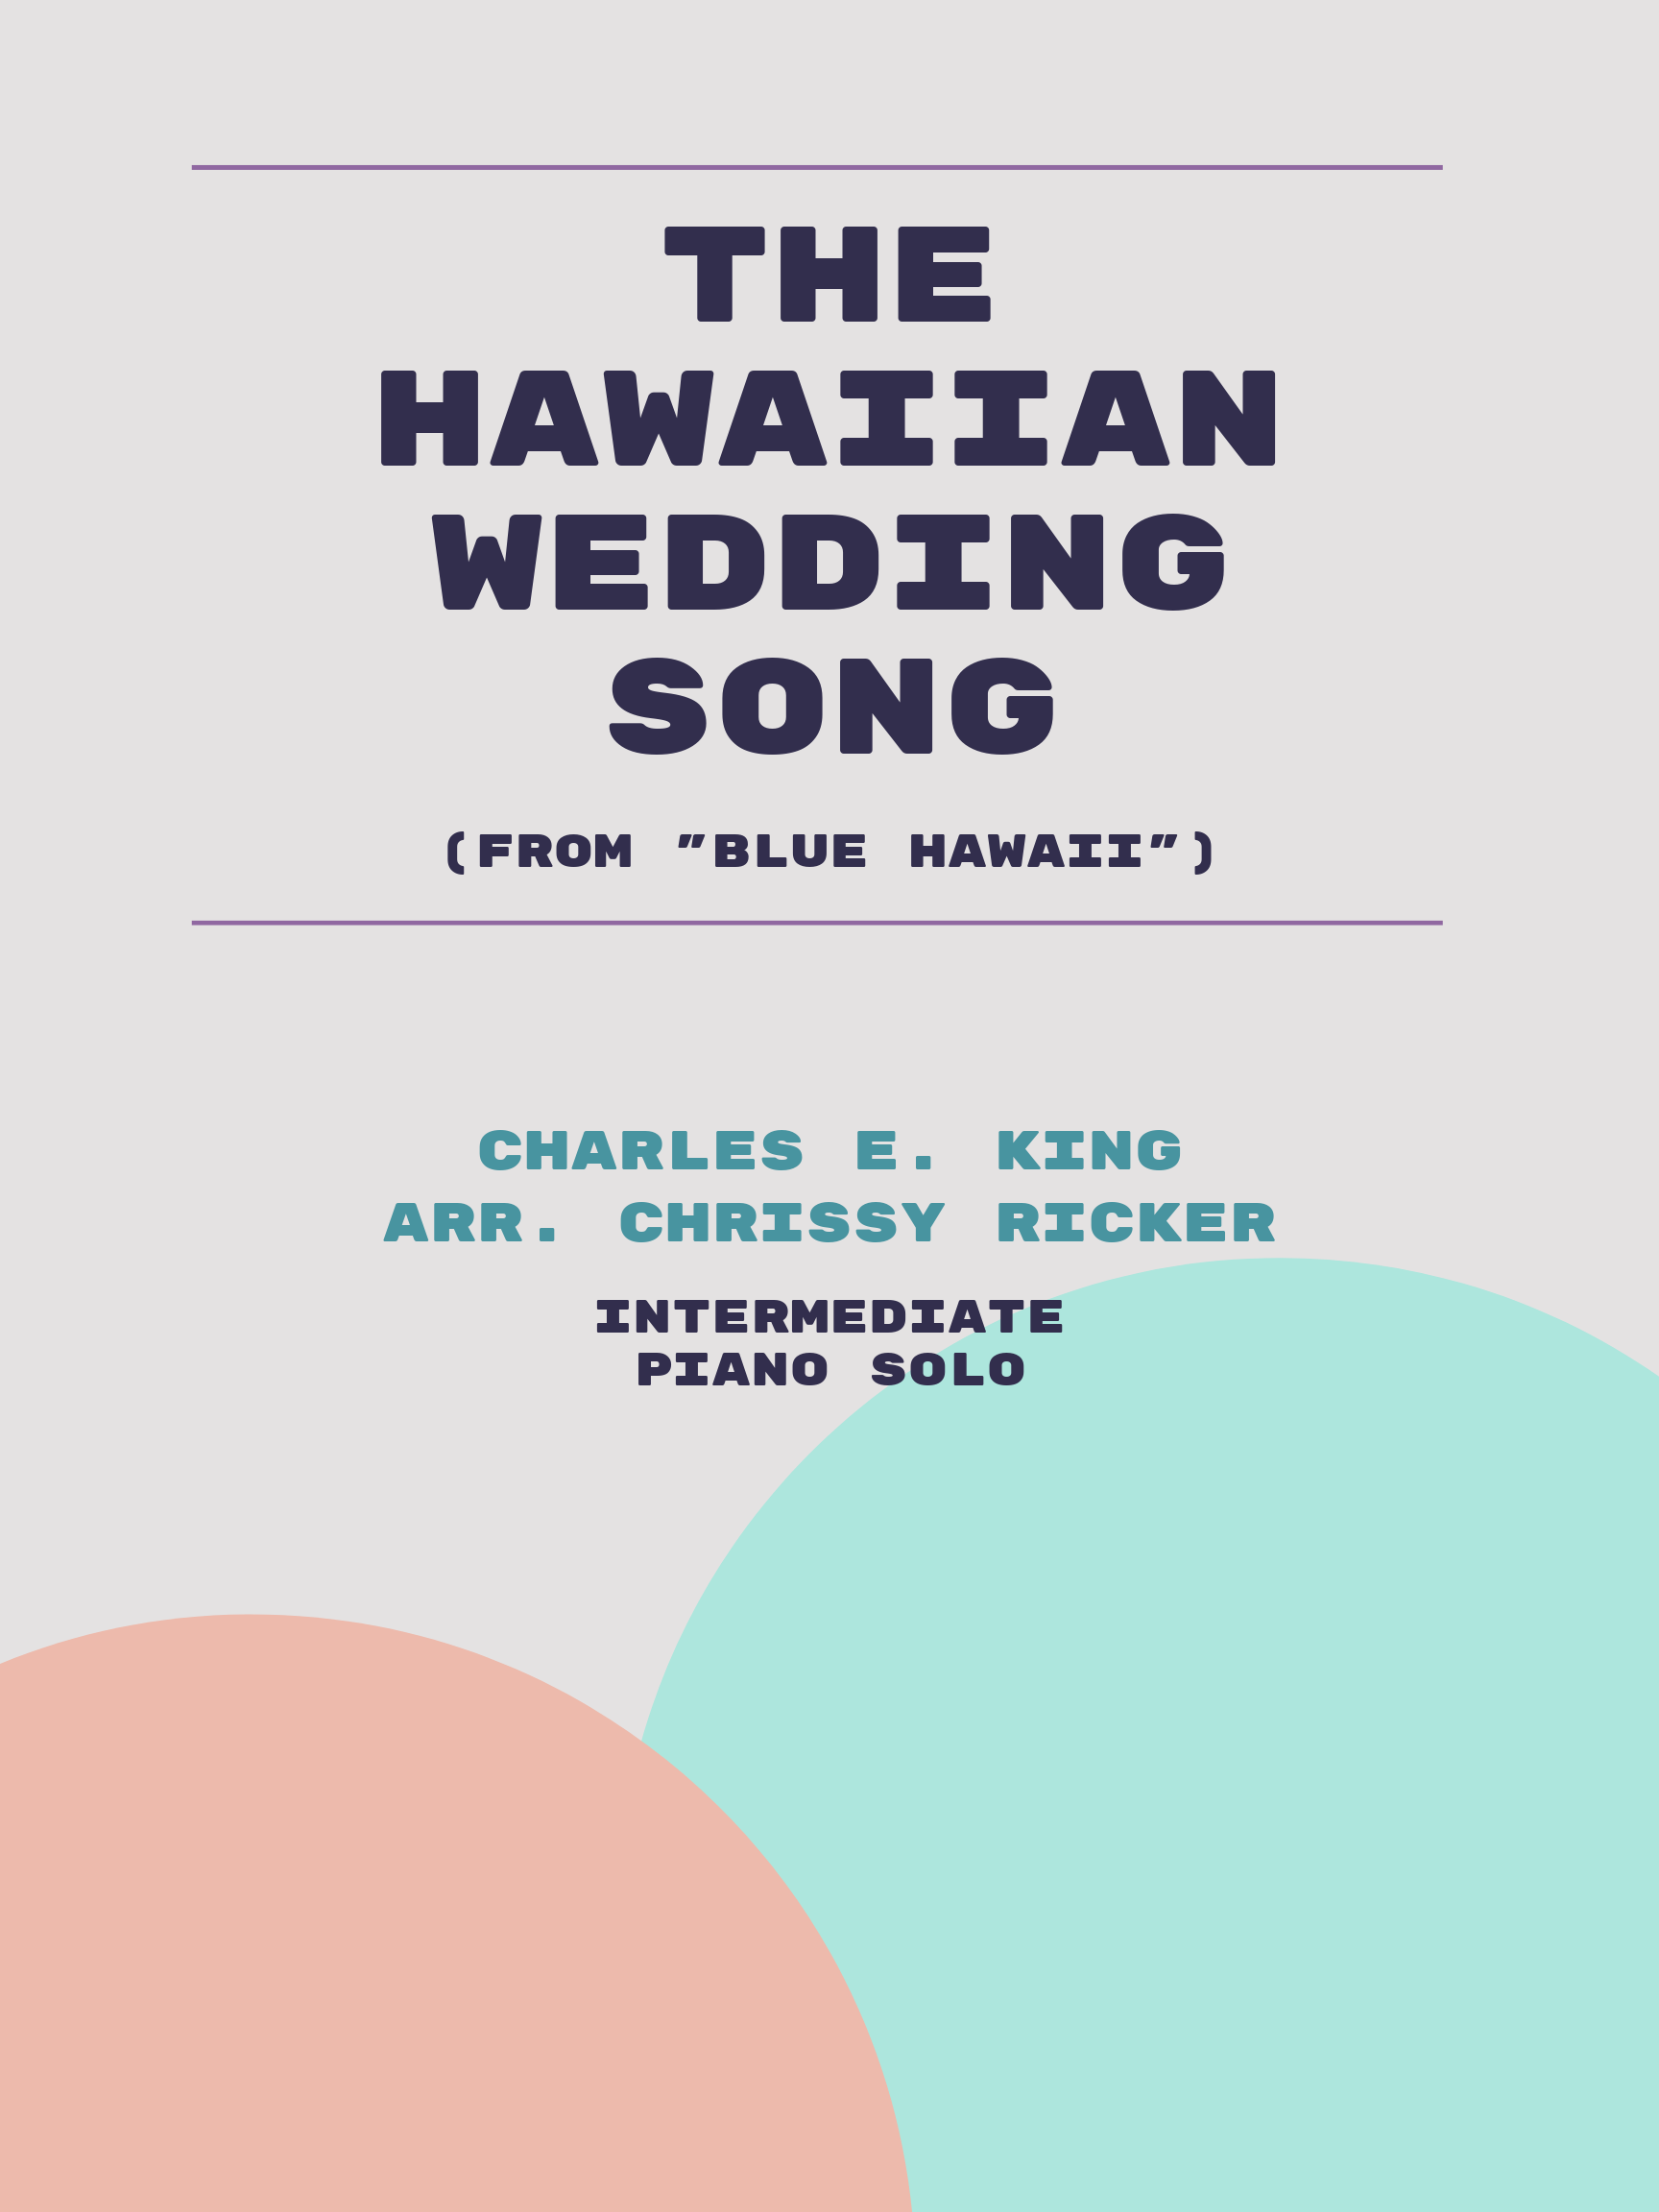 The Hawaiian Wedding Song by Charles E. King